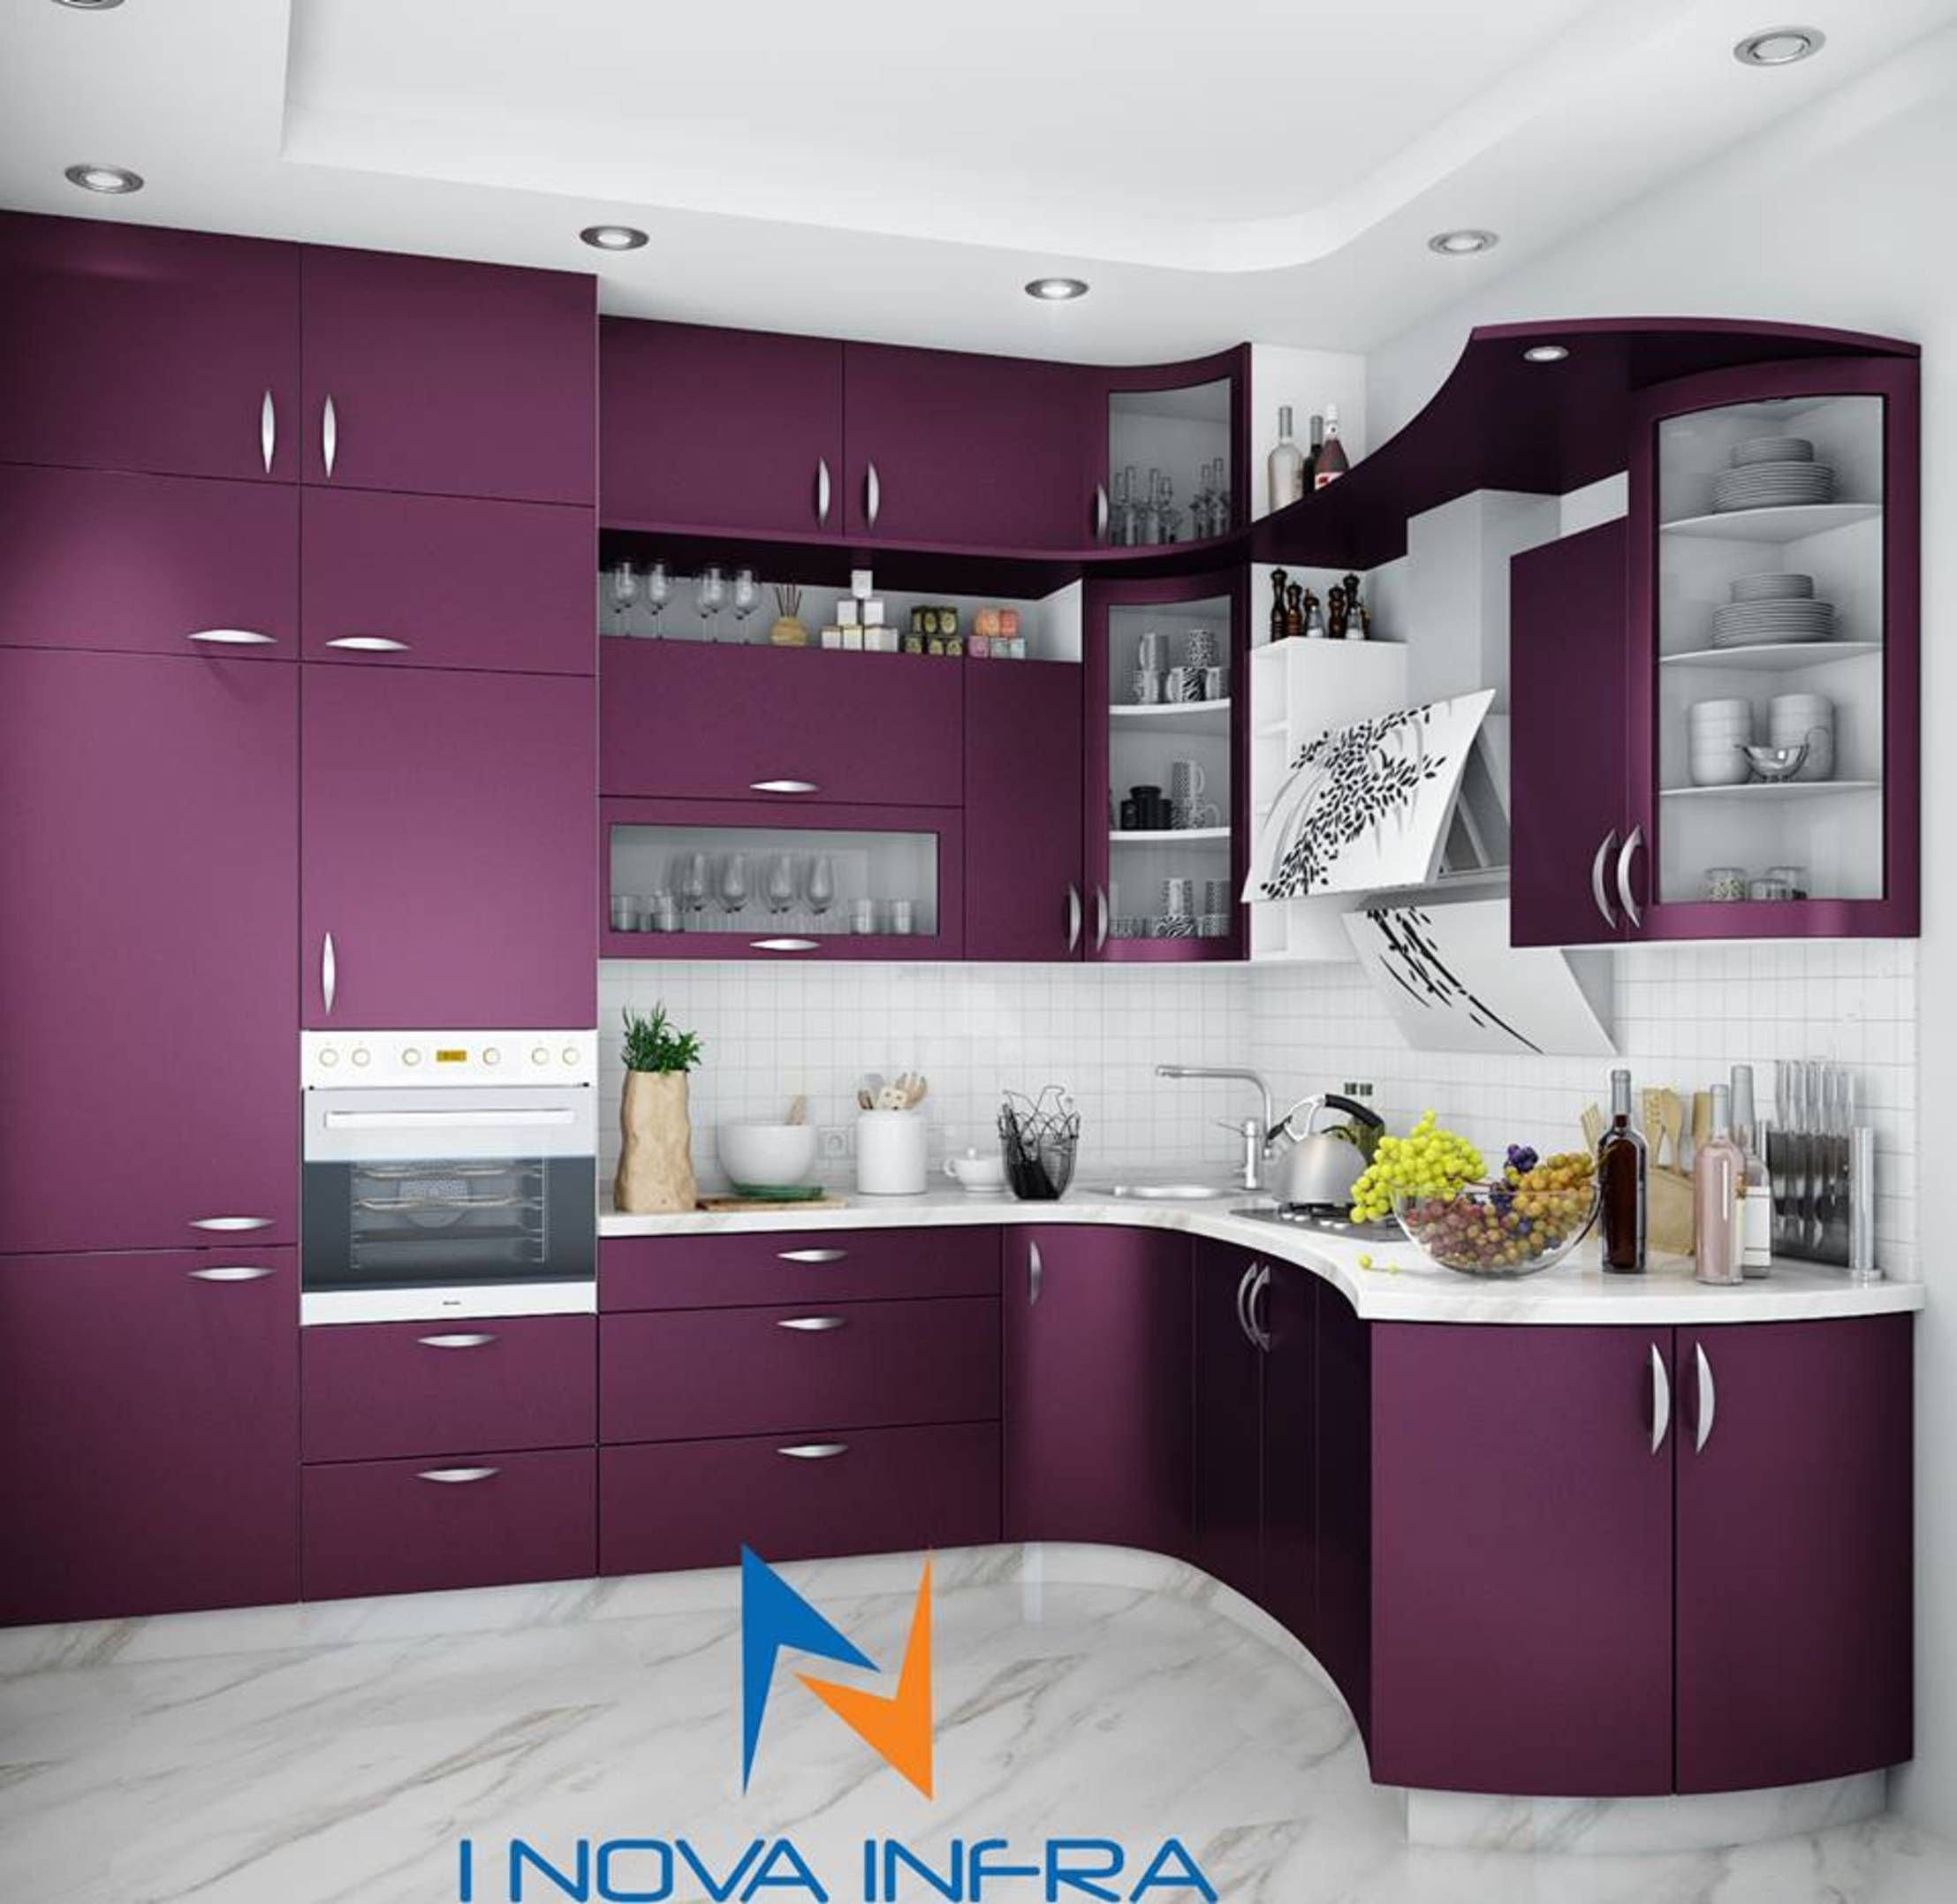 6 Ways To Store More In Your Small Indian Kitchen Homify